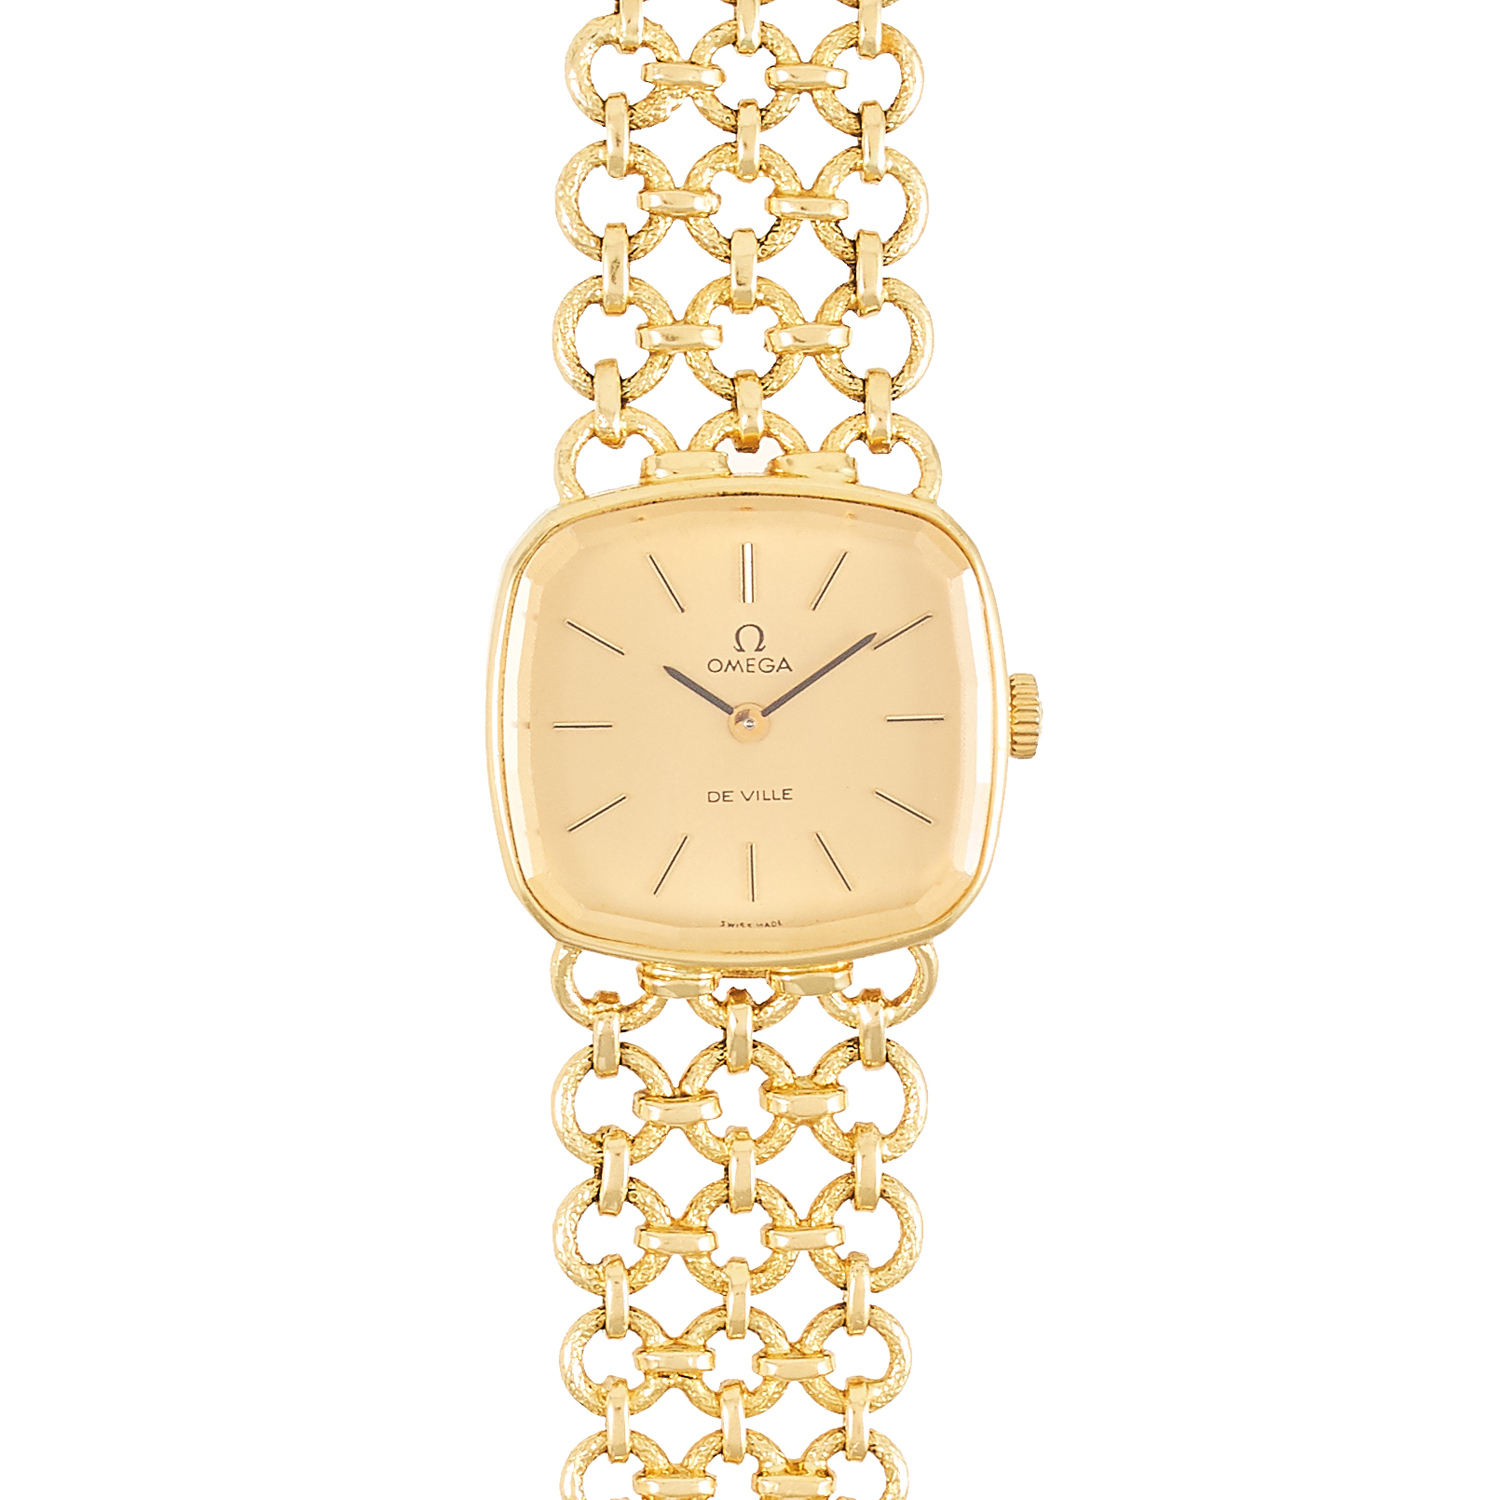 Los 109 - A LADIES OMEGA DE VILLE WRIST WATCH in 18ct yellow gold, the cushion shaped face within a circular